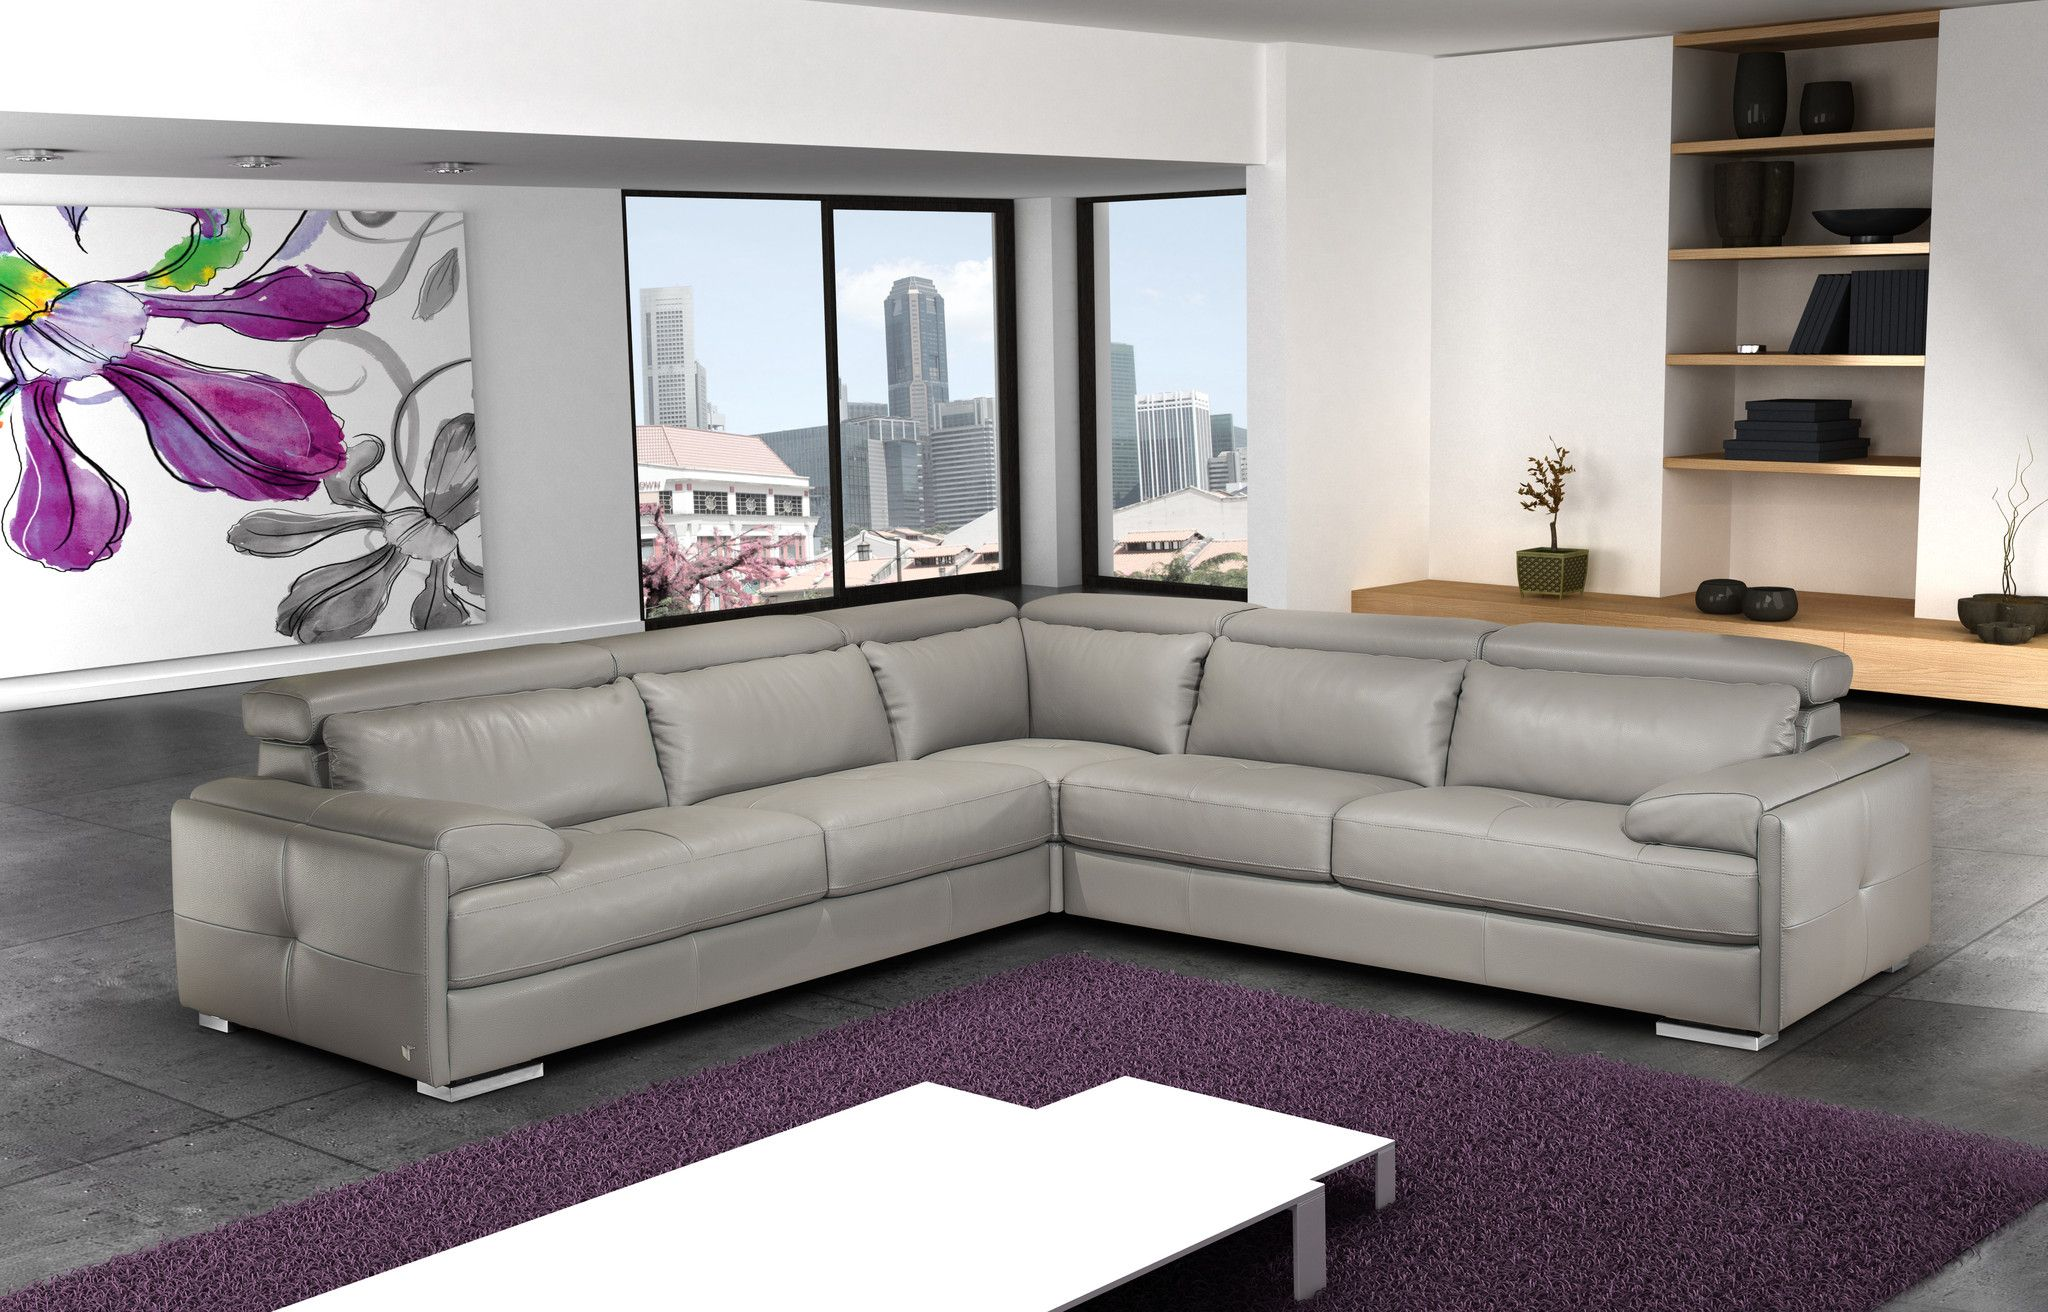 Customer Image Zoomed Time to a new couch